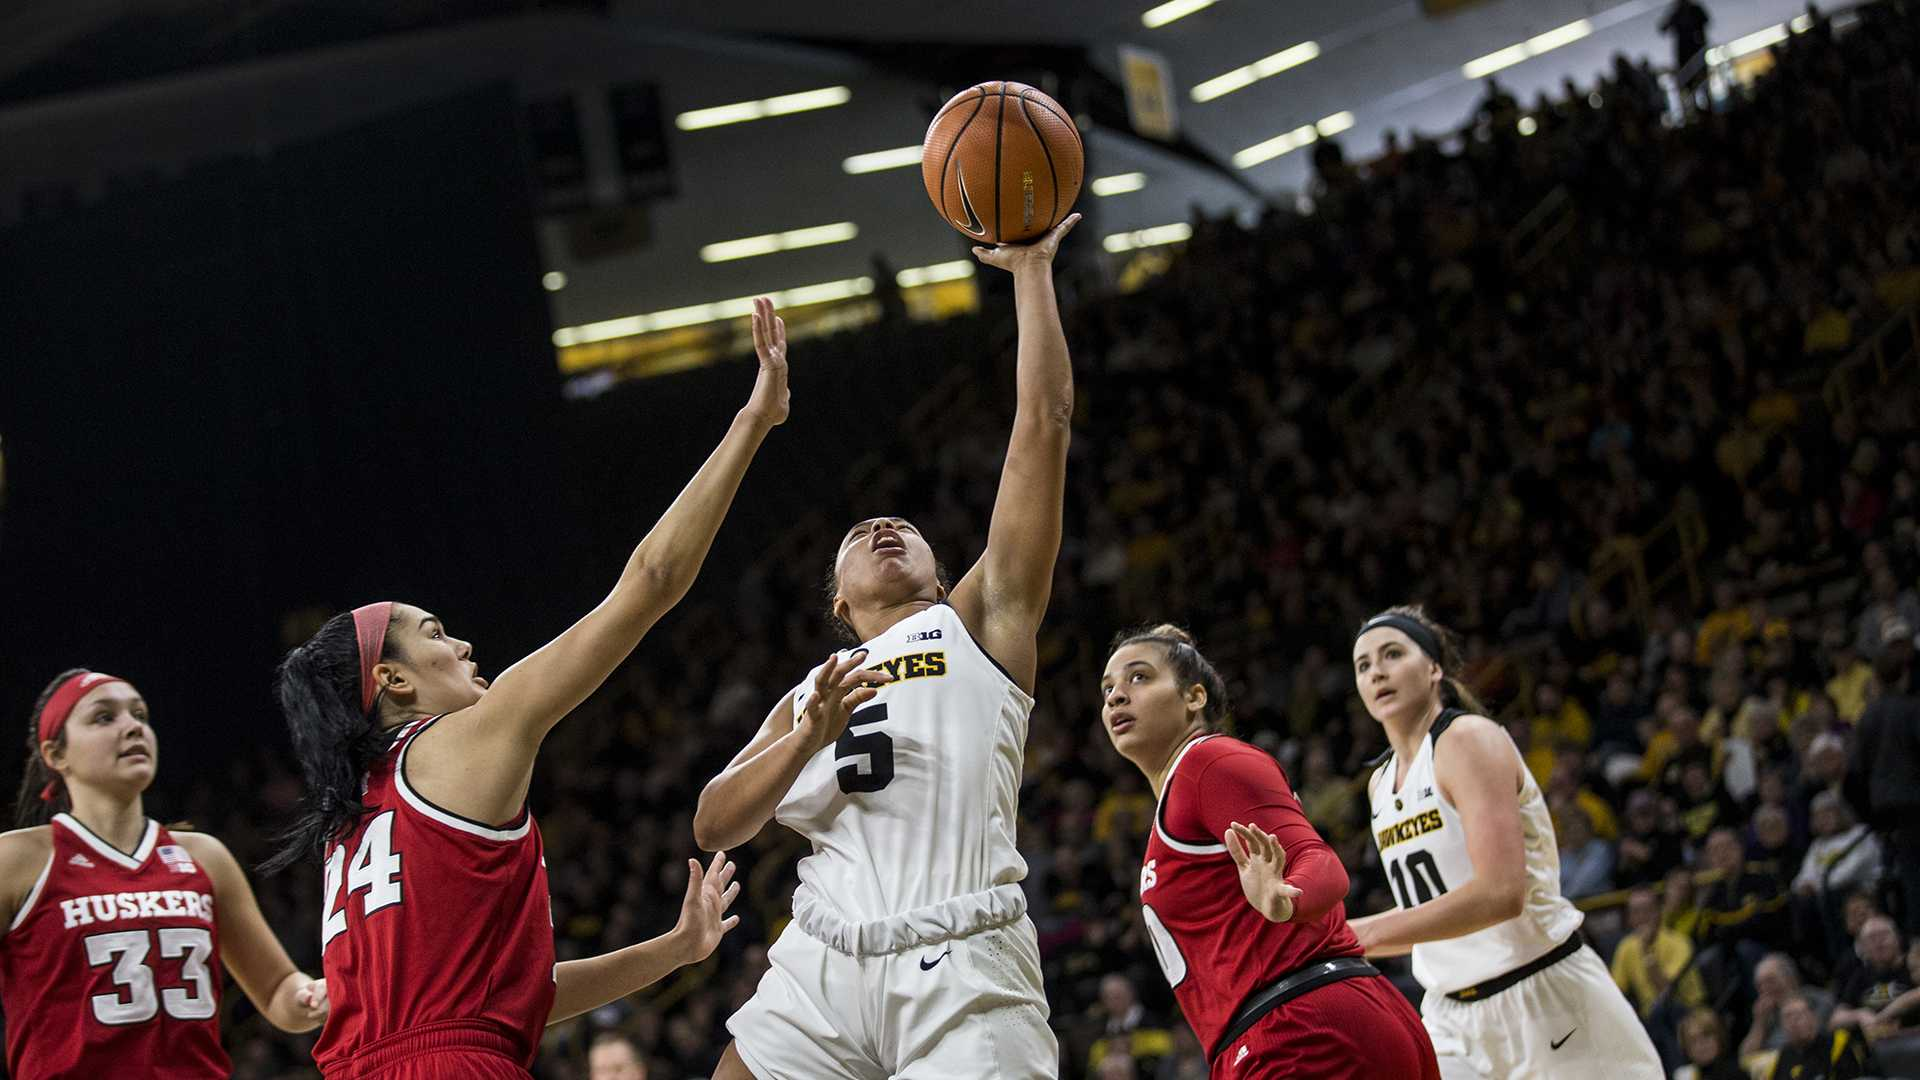 during the NCAA women's basketball game at Carver-Hawkeye Arena on Sunday, Jan. 28, 2018. The Cornhuskers defeated the Hawkeyes 92-74. (Chris Kalous/The Daily Iowan)